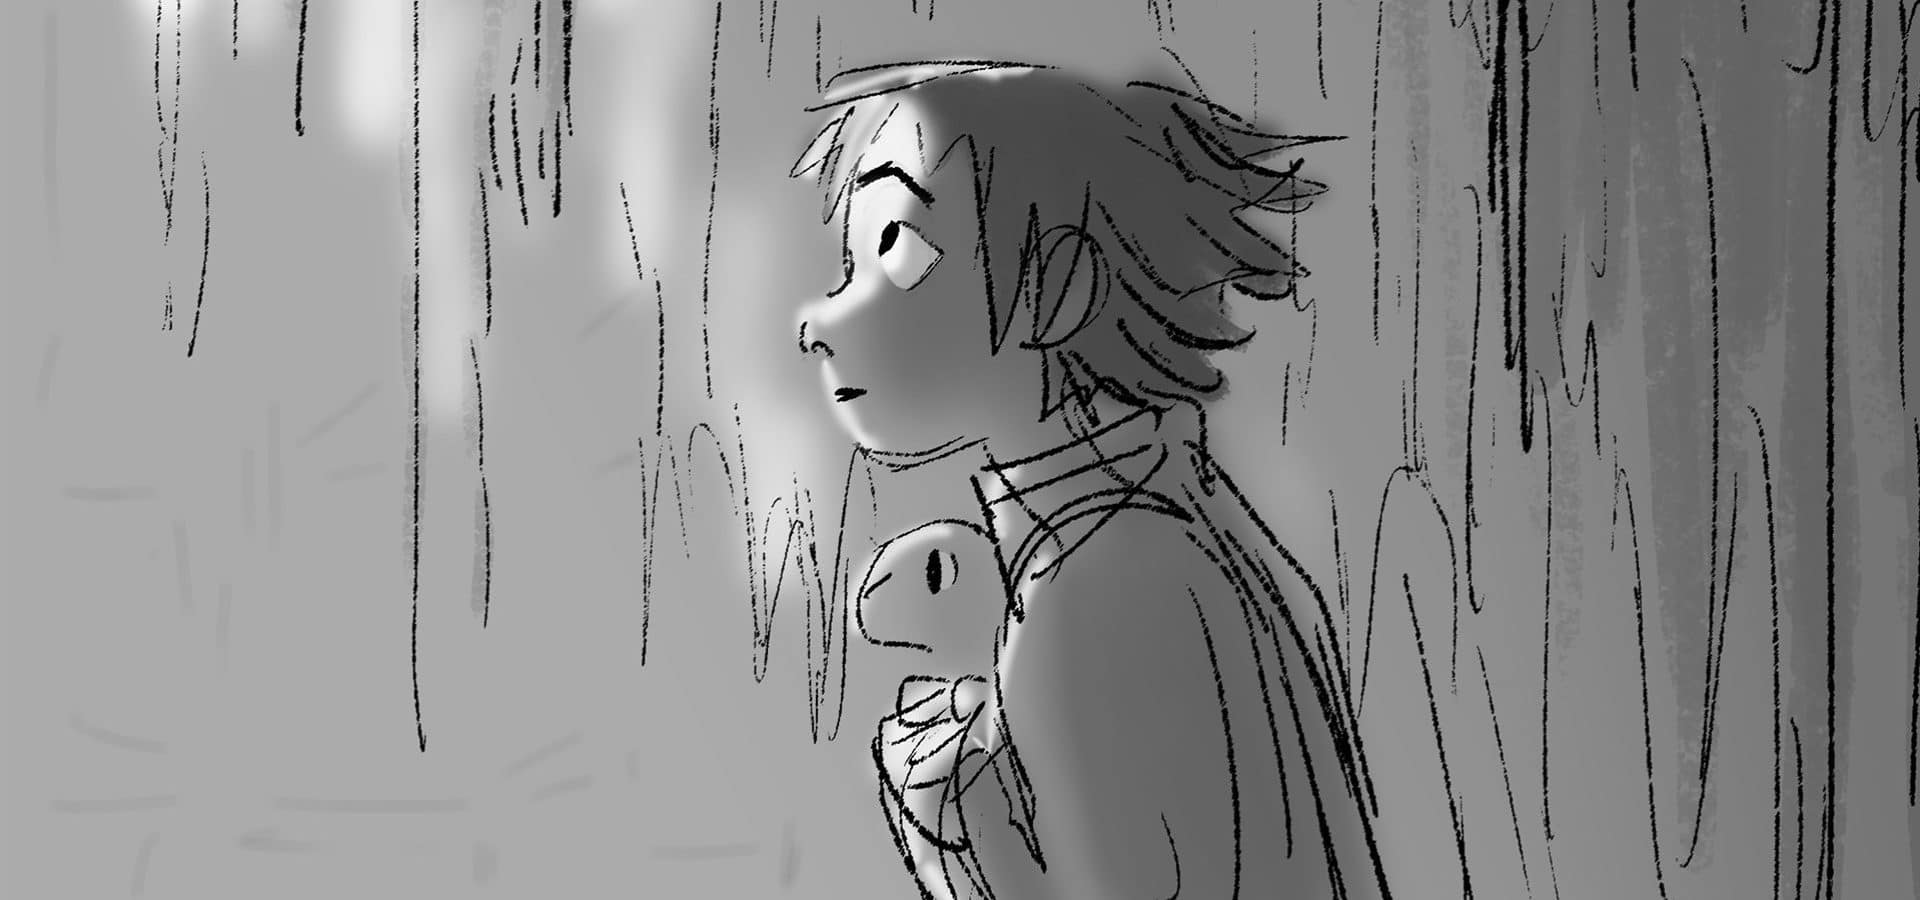 storyboard of Fei Fei in profile in Over the Moon